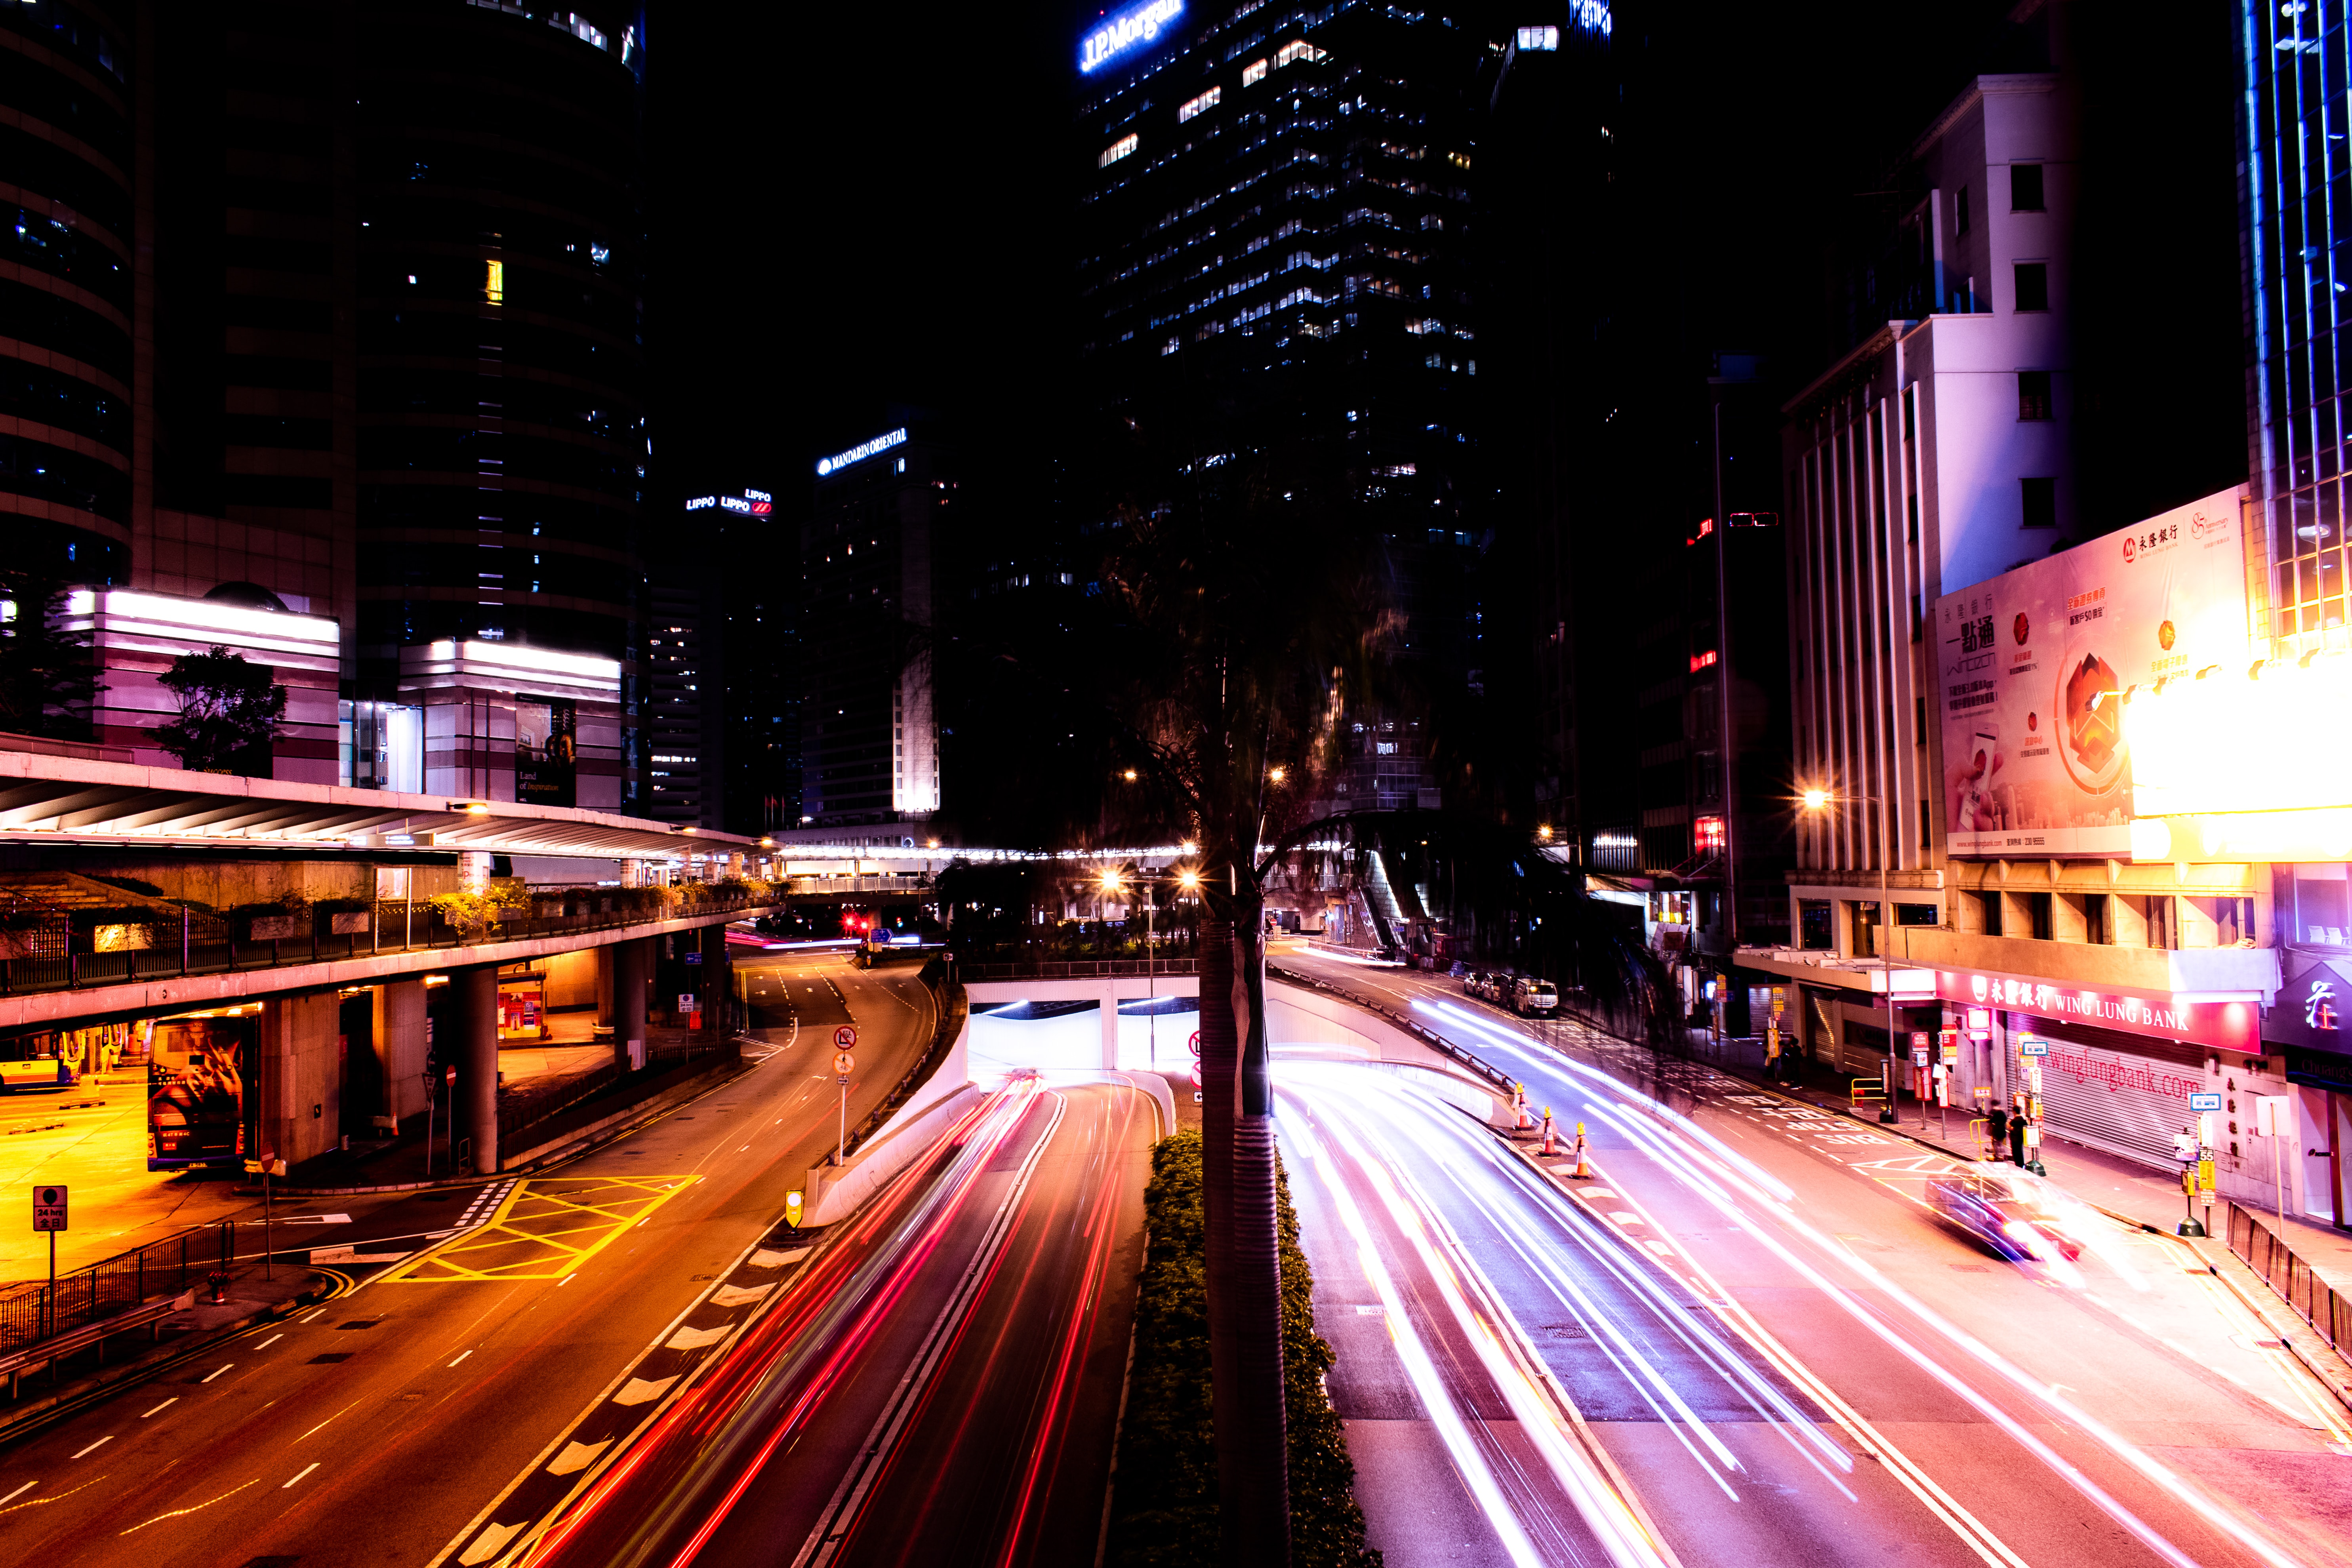 time lapse photography of passing vehicles between high-rise buildings